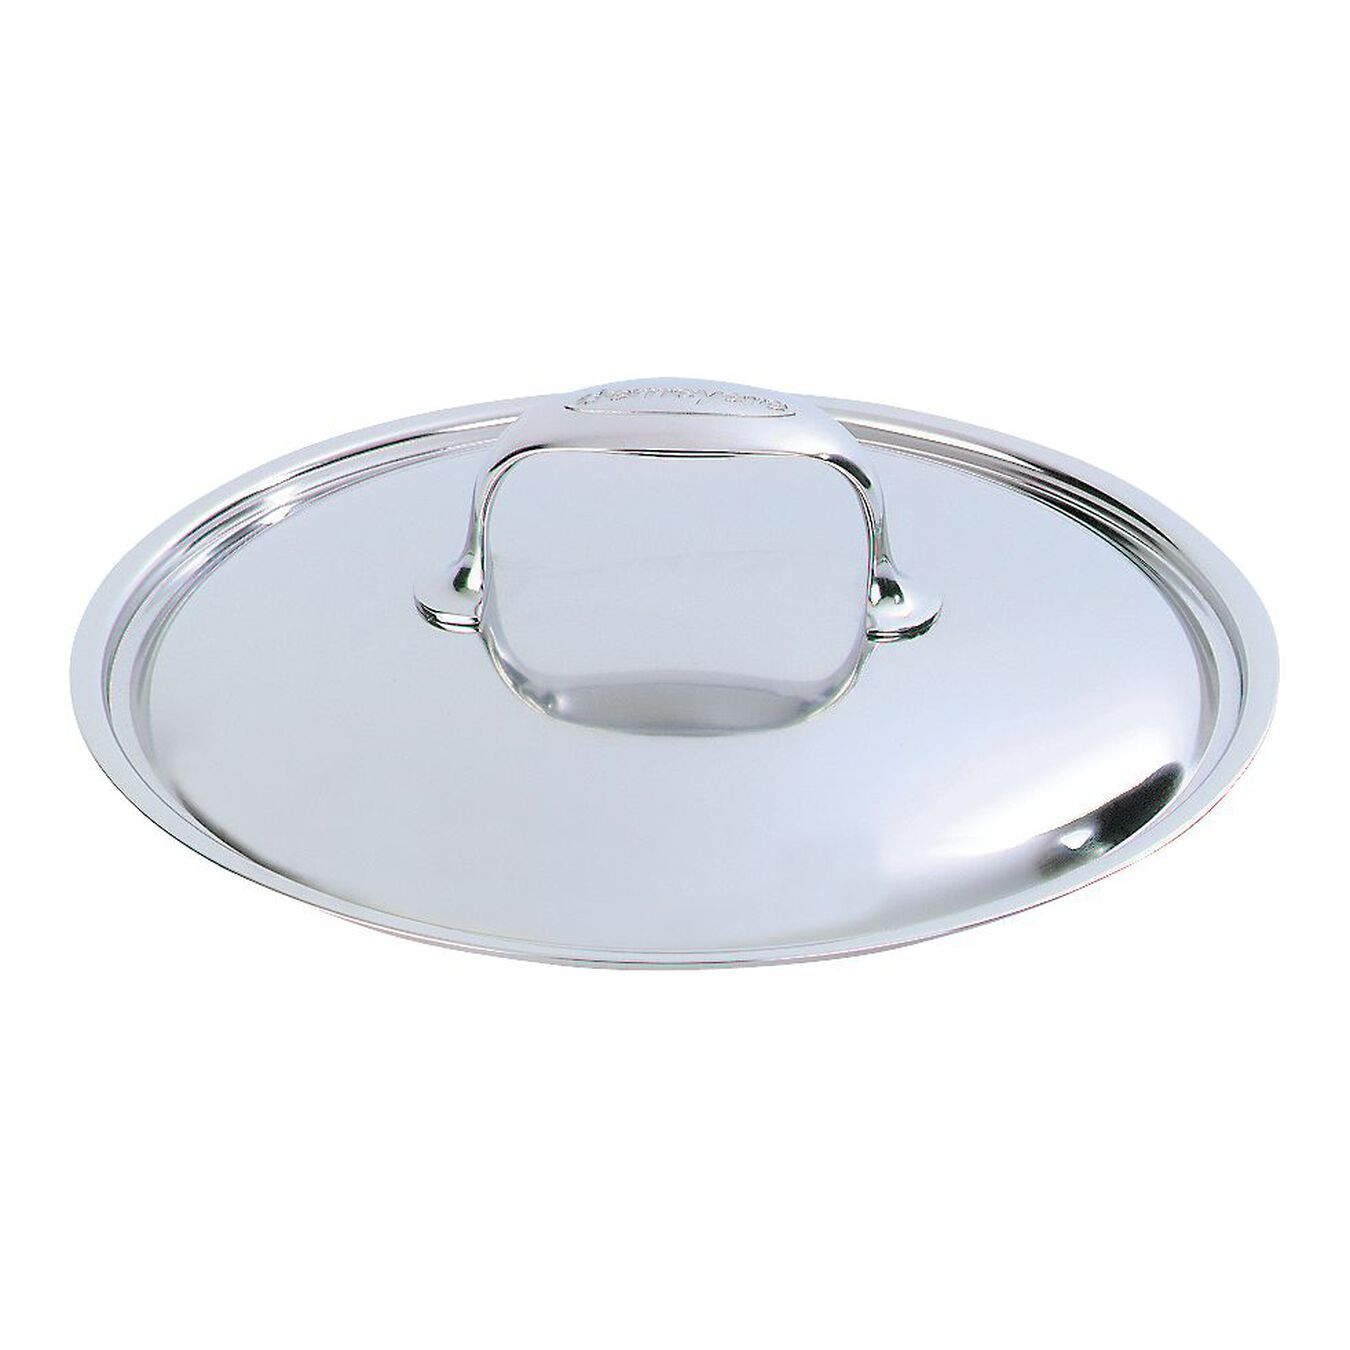 Couvercle, Rond(e)   Inox 18/10,,large 2